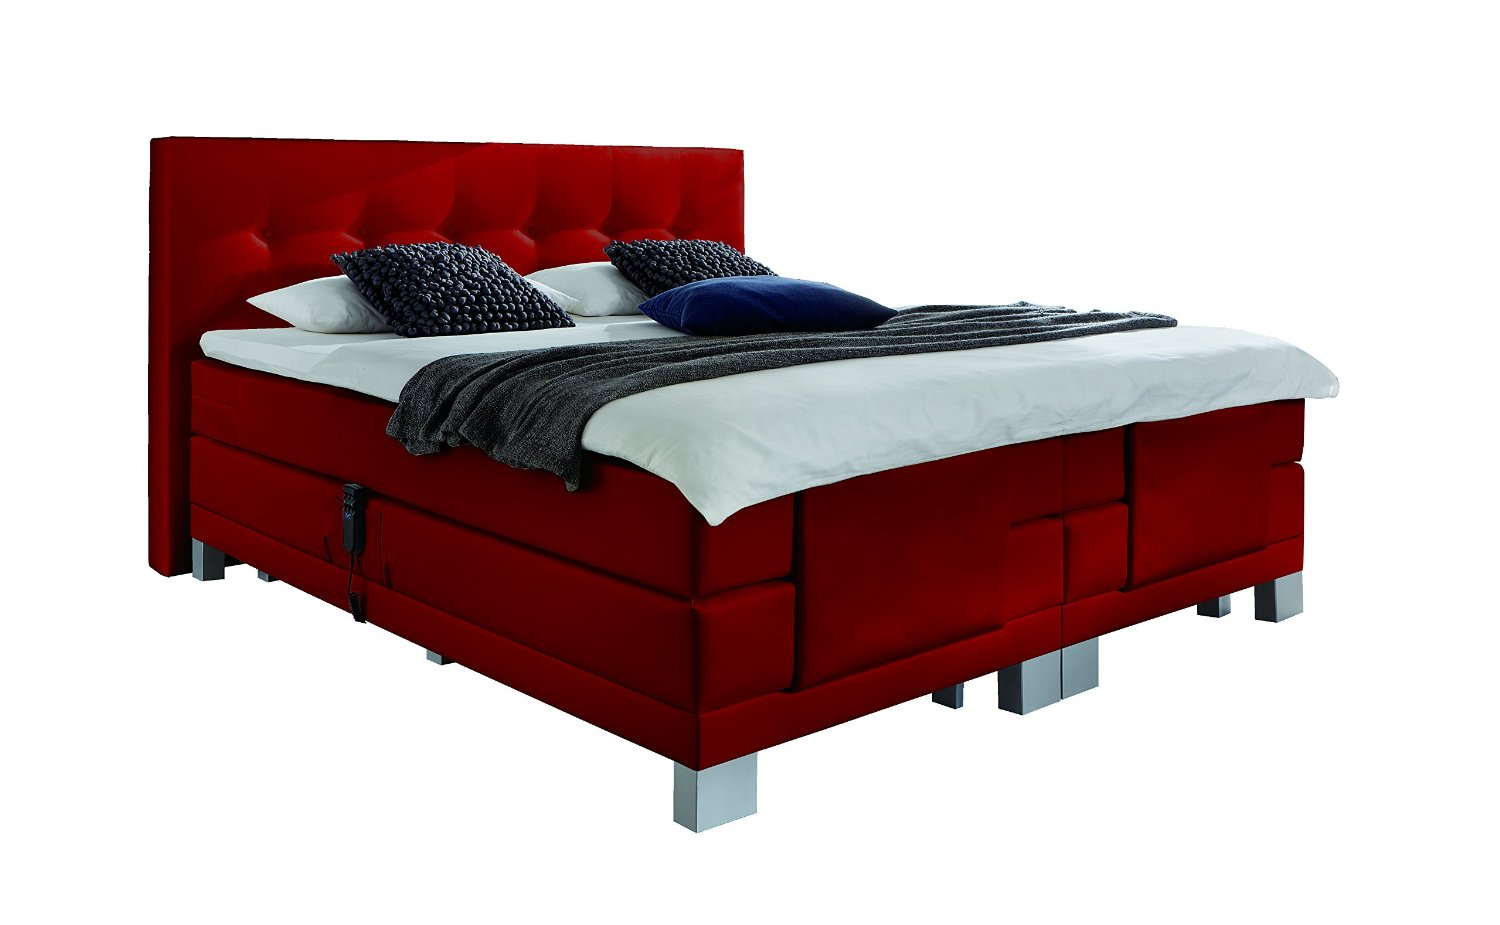 boxspringbett mit motor test vergleich top 10 im juli 2018. Black Bedroom Furniture Sets. Home Design Ideas